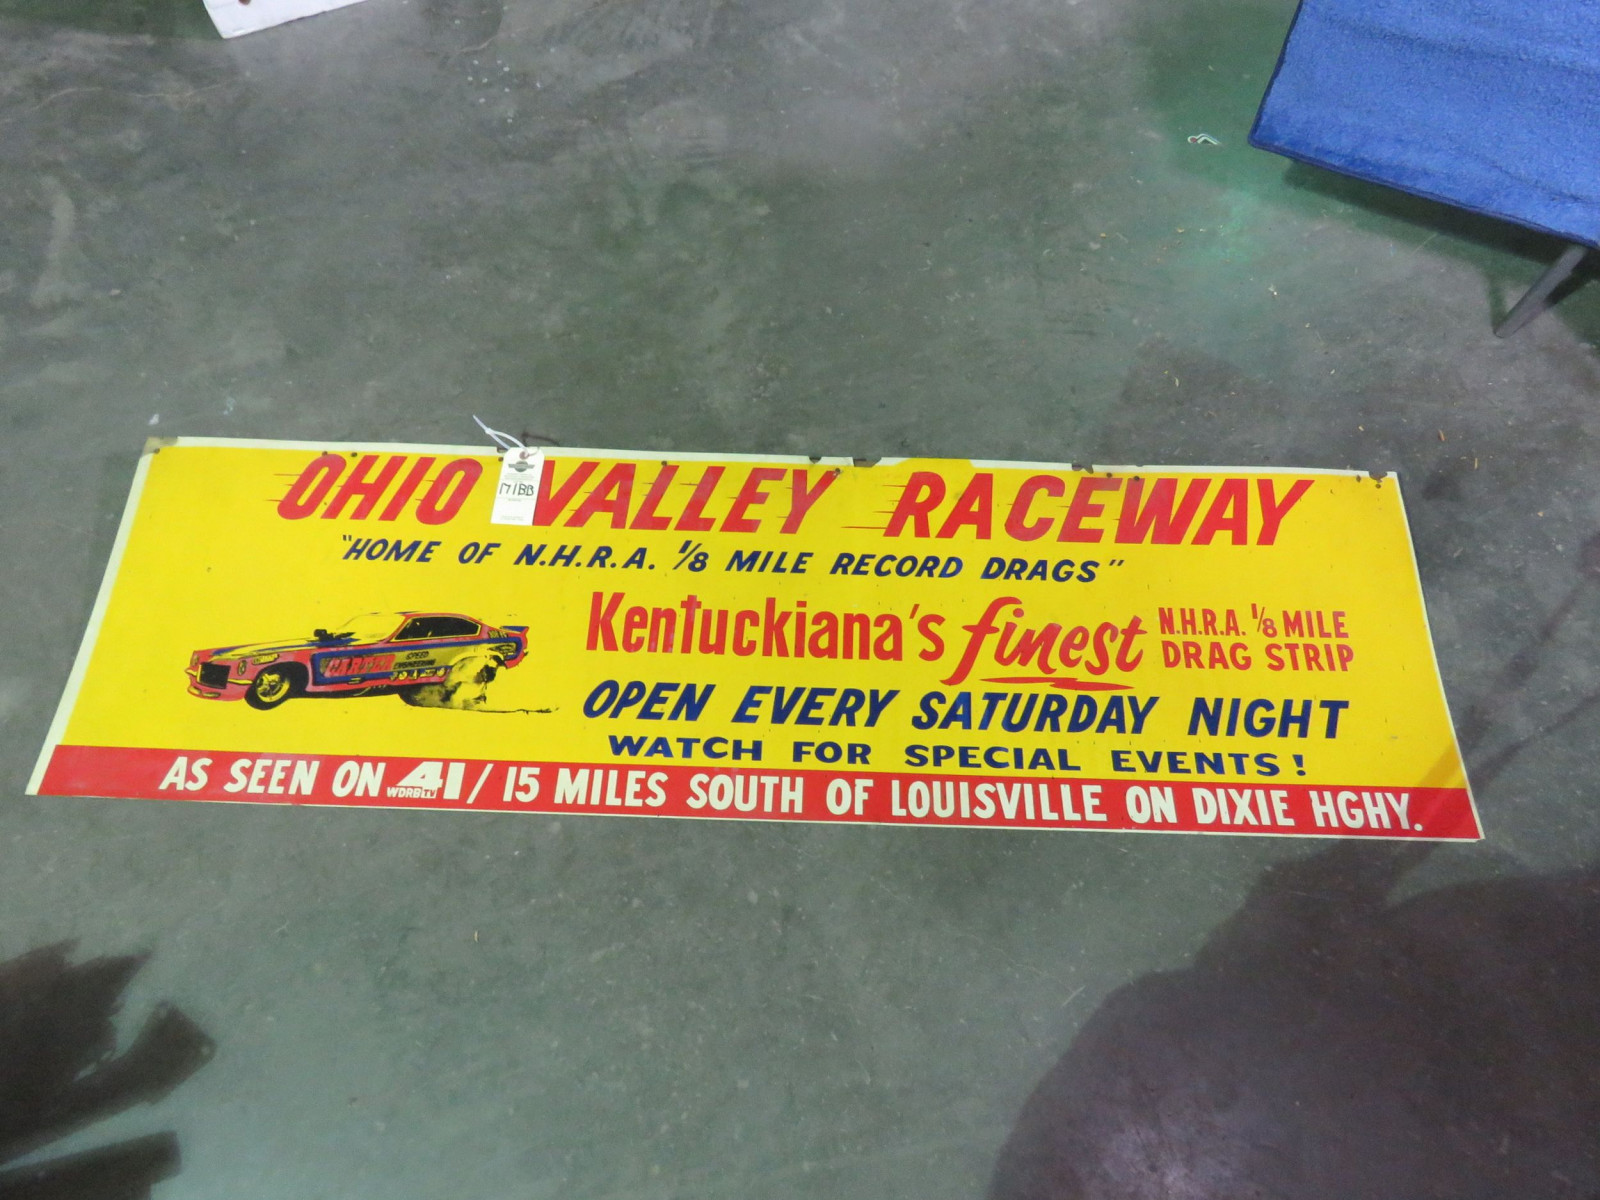 Ohio Valley RcewaysOriginal Sign - Image 1